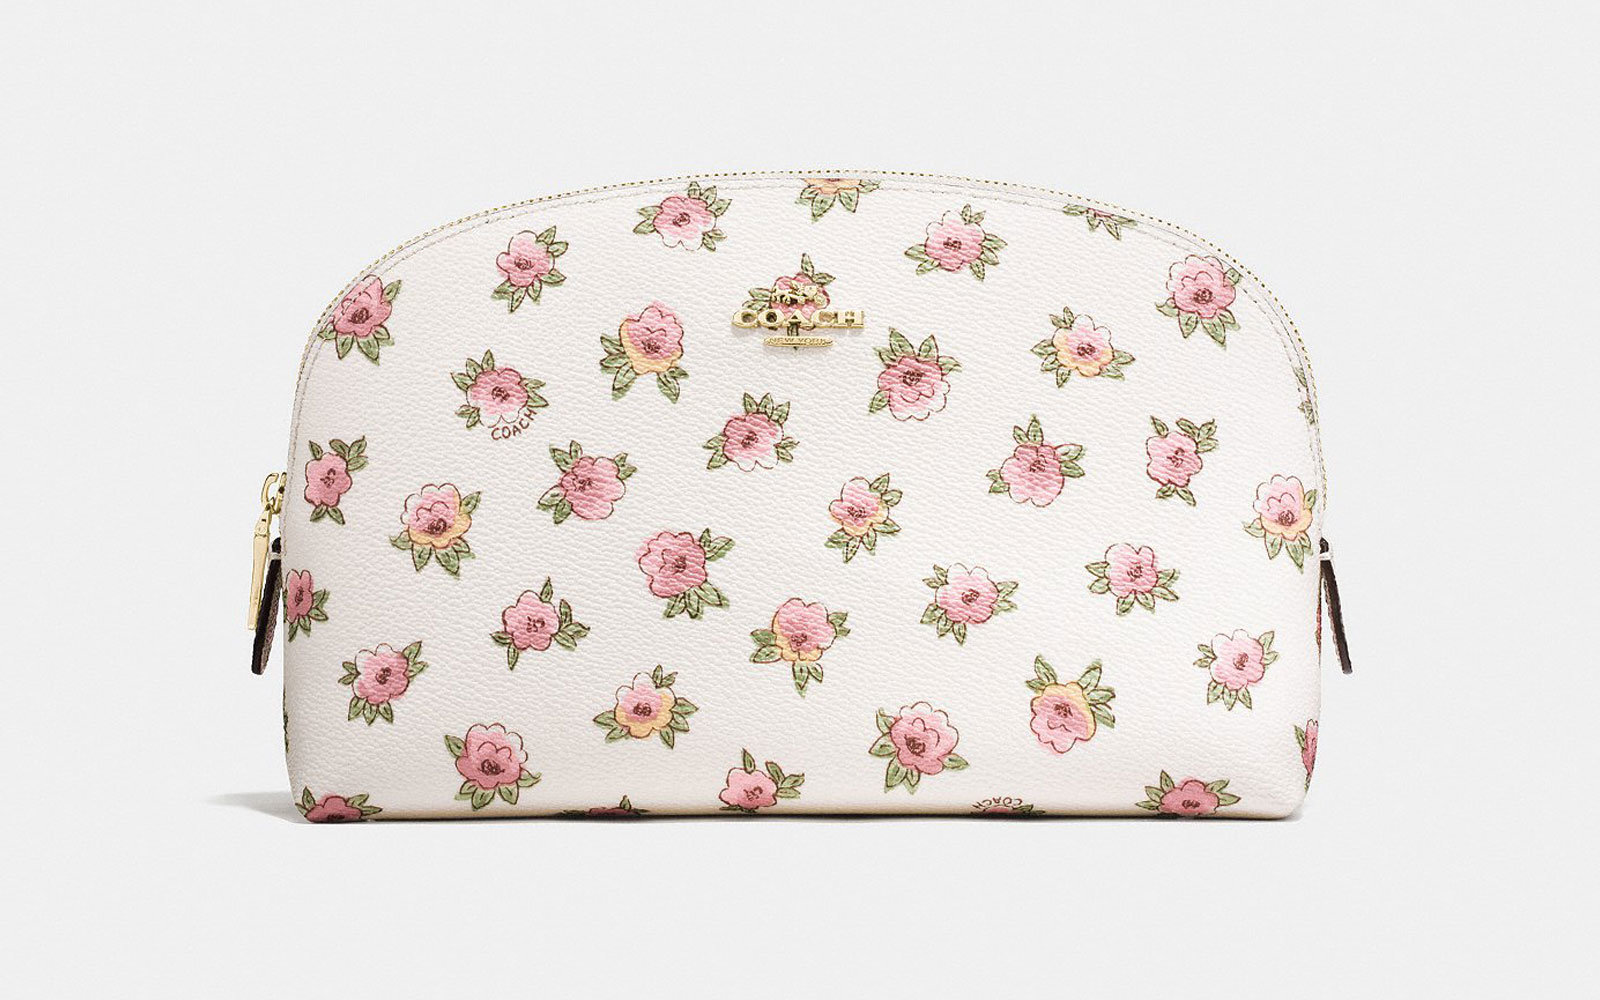 Coach floral accessories bag